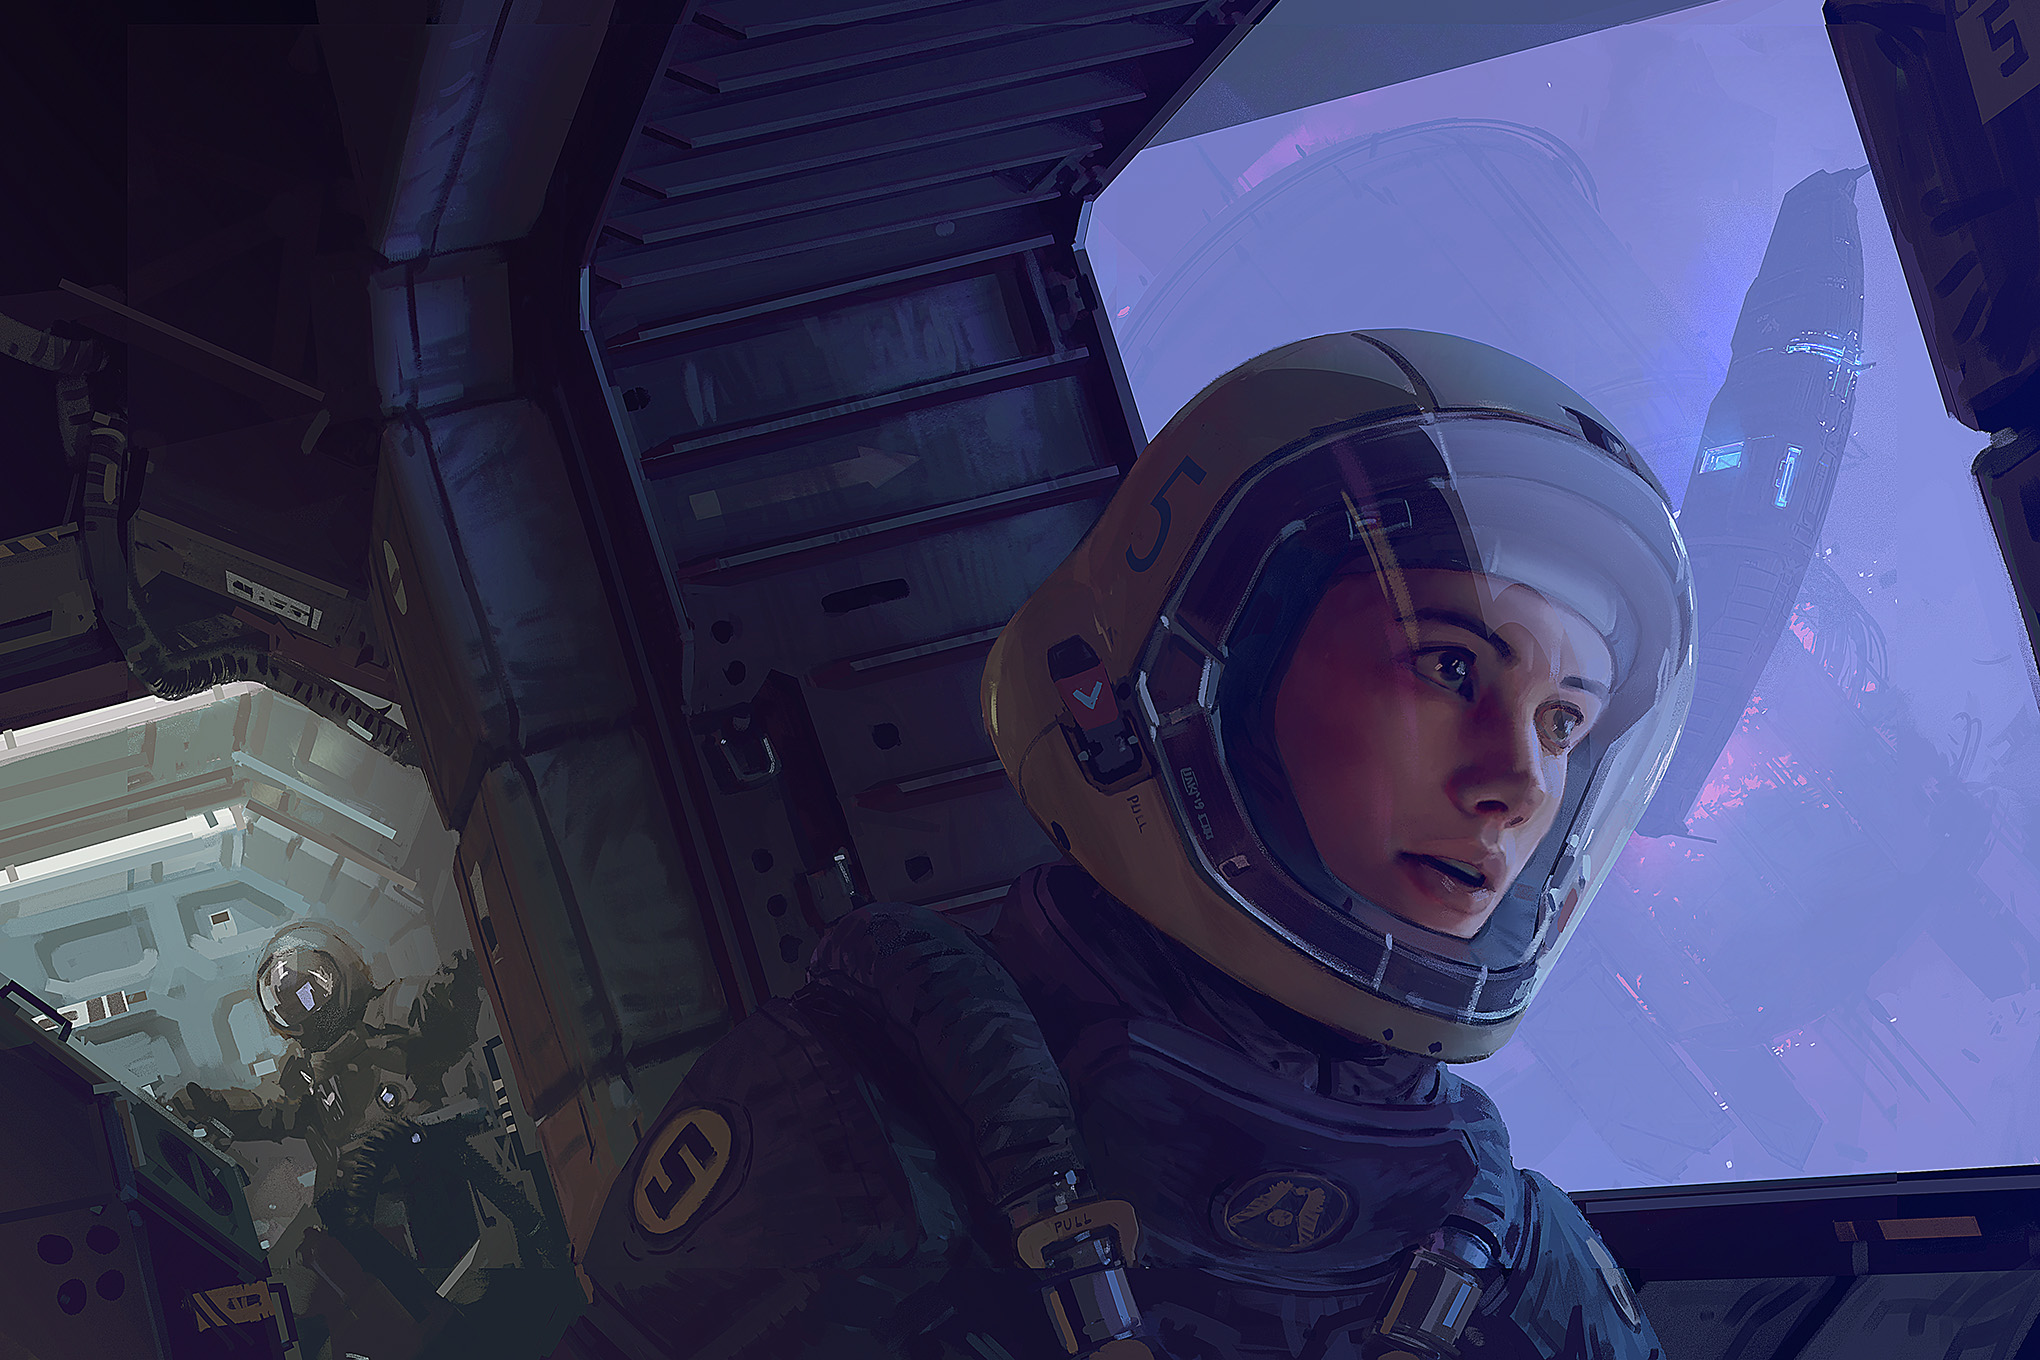 Full cover art for the Homeworld: Revelations tabletop role-playing core rulebook. It shows a humanoid woman with eyes wide, the light of a battle reflecting off the glass of her helmet. In the background looms the iconic form of a Homeworld battleship.